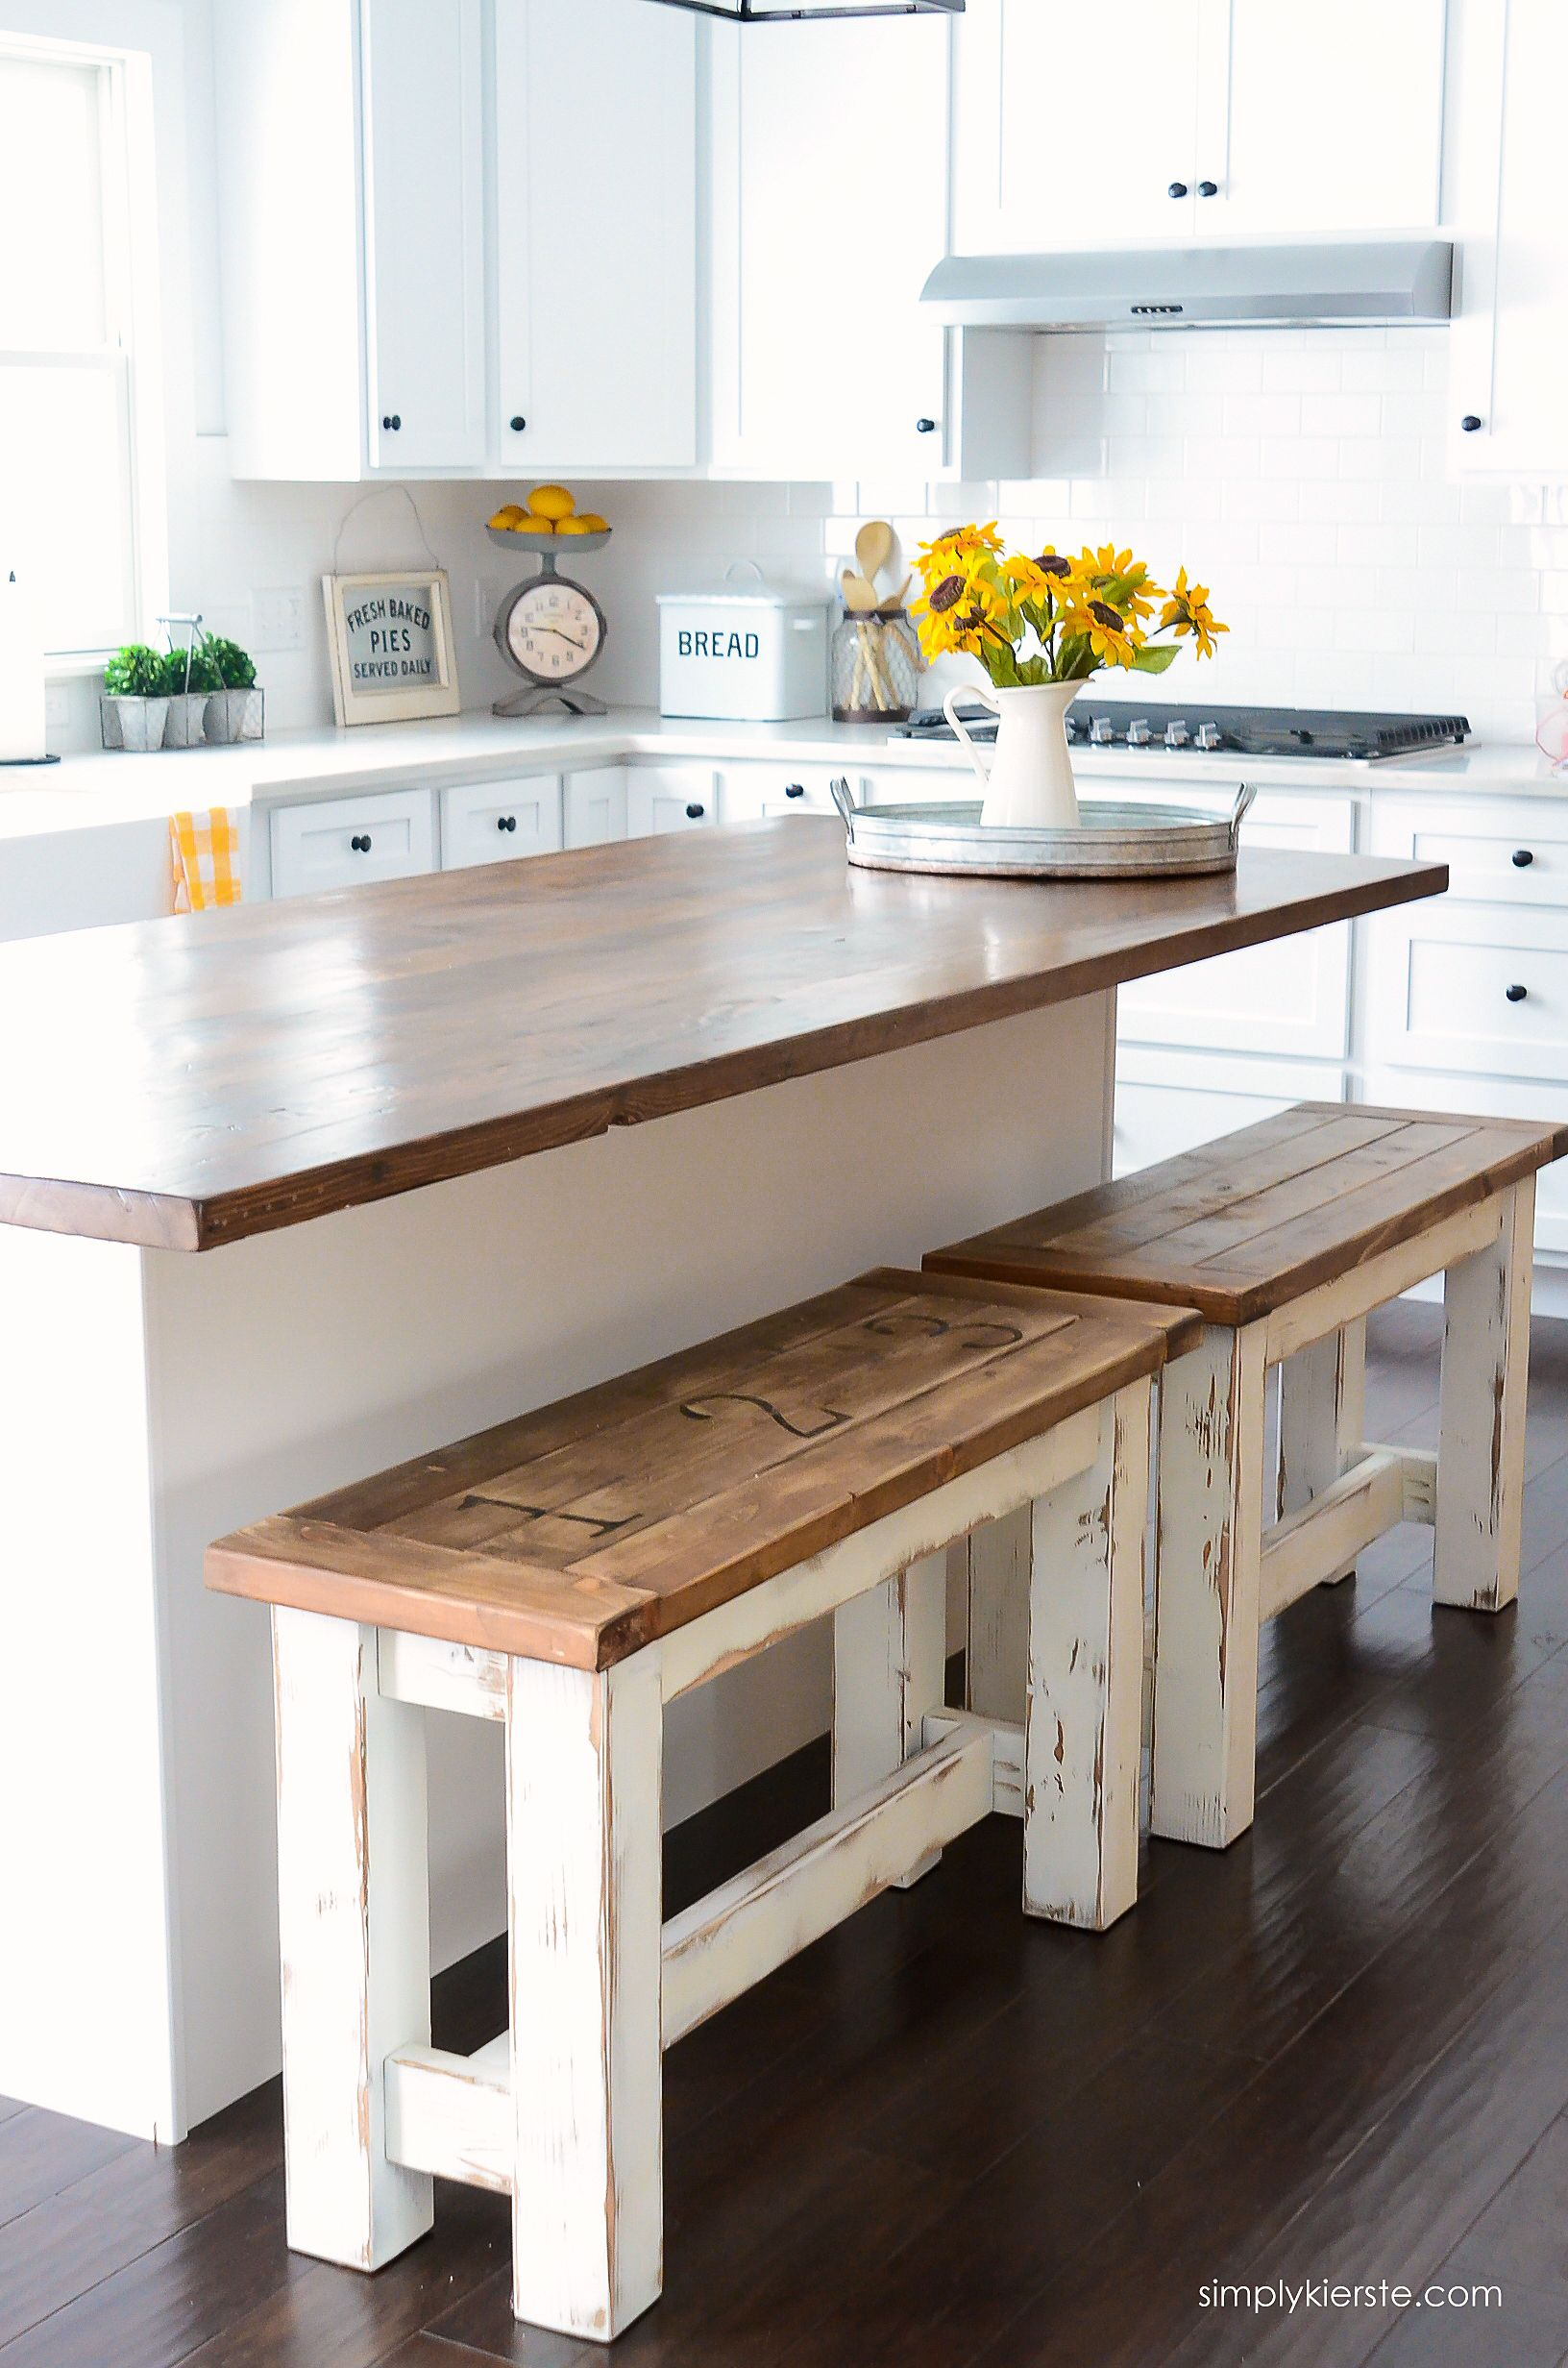 bobs furniture kitchen island laminate table diy benches budget ideas farmhouse style